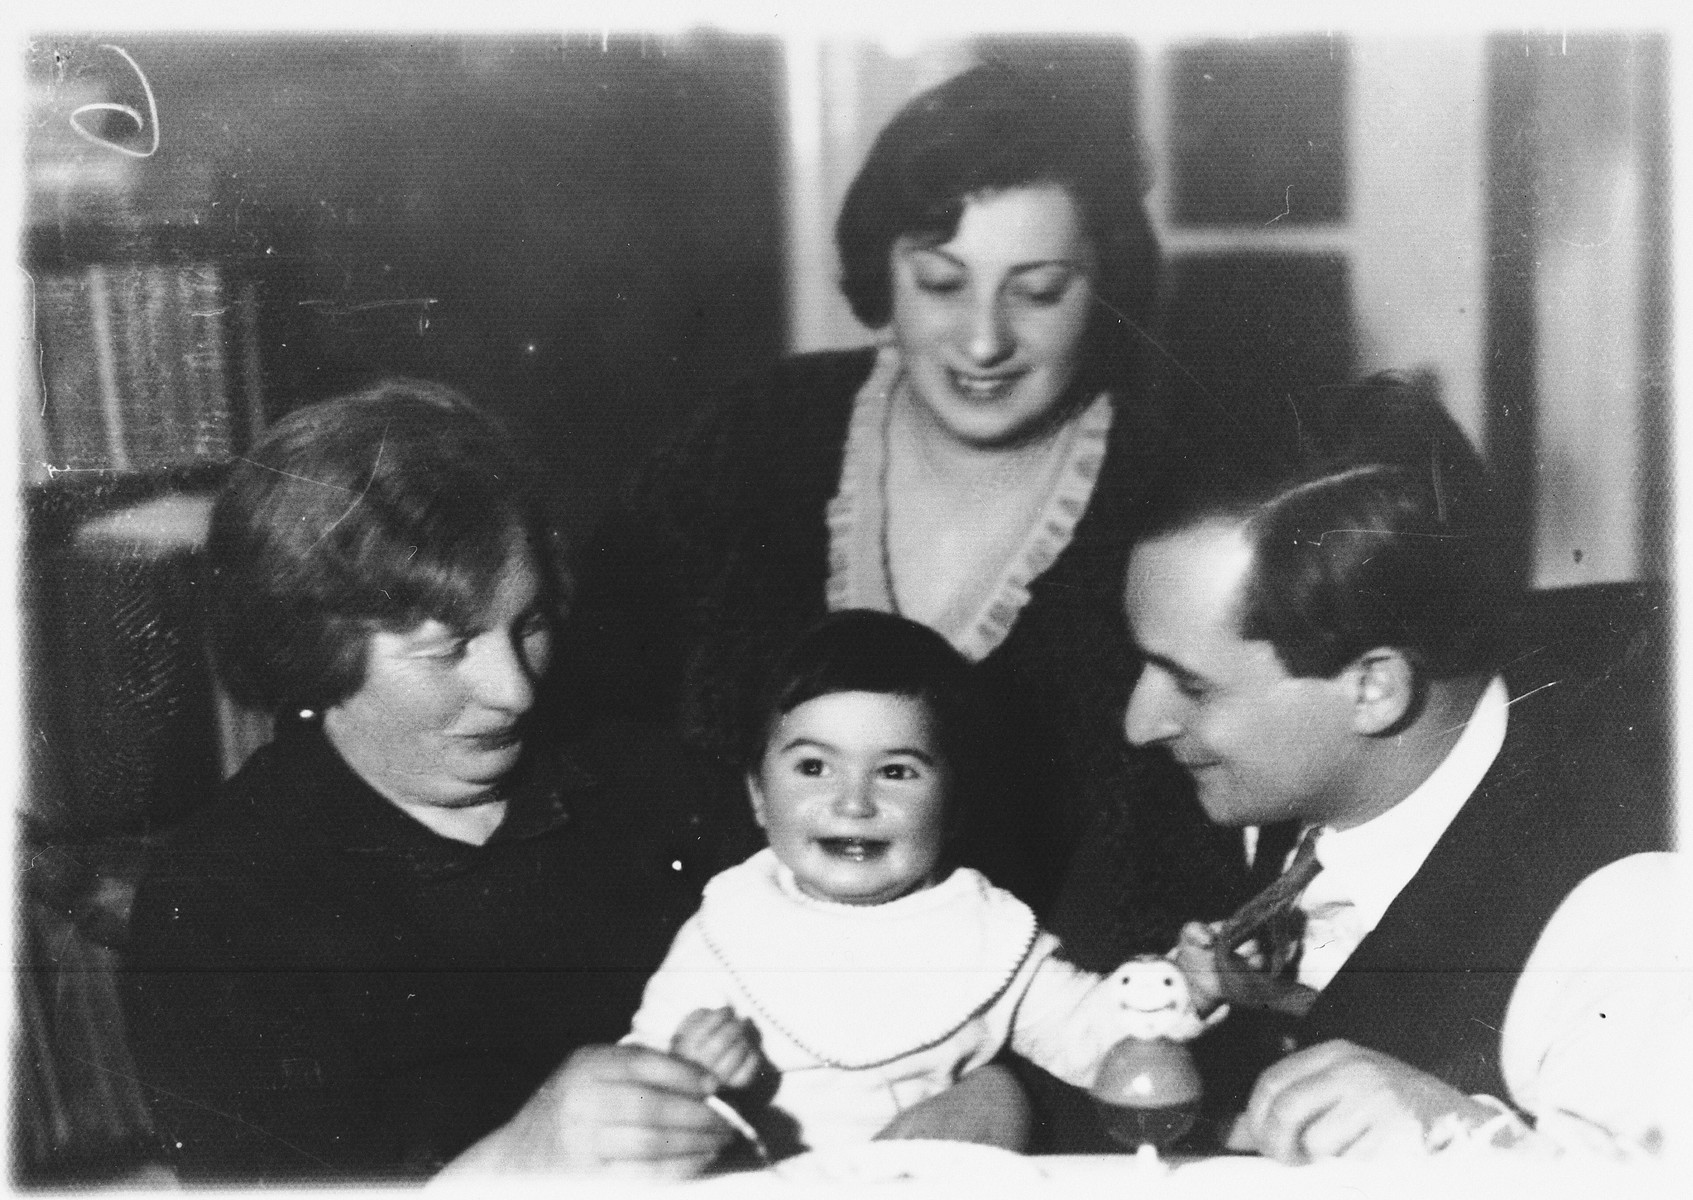 Portrait of the Hofmekler family in Kovno, Lithuania.  Pictured are Leon Hofmekler with his wife, Sonya, his son, Garrik, and Sonya's mother, Mrs. Levin